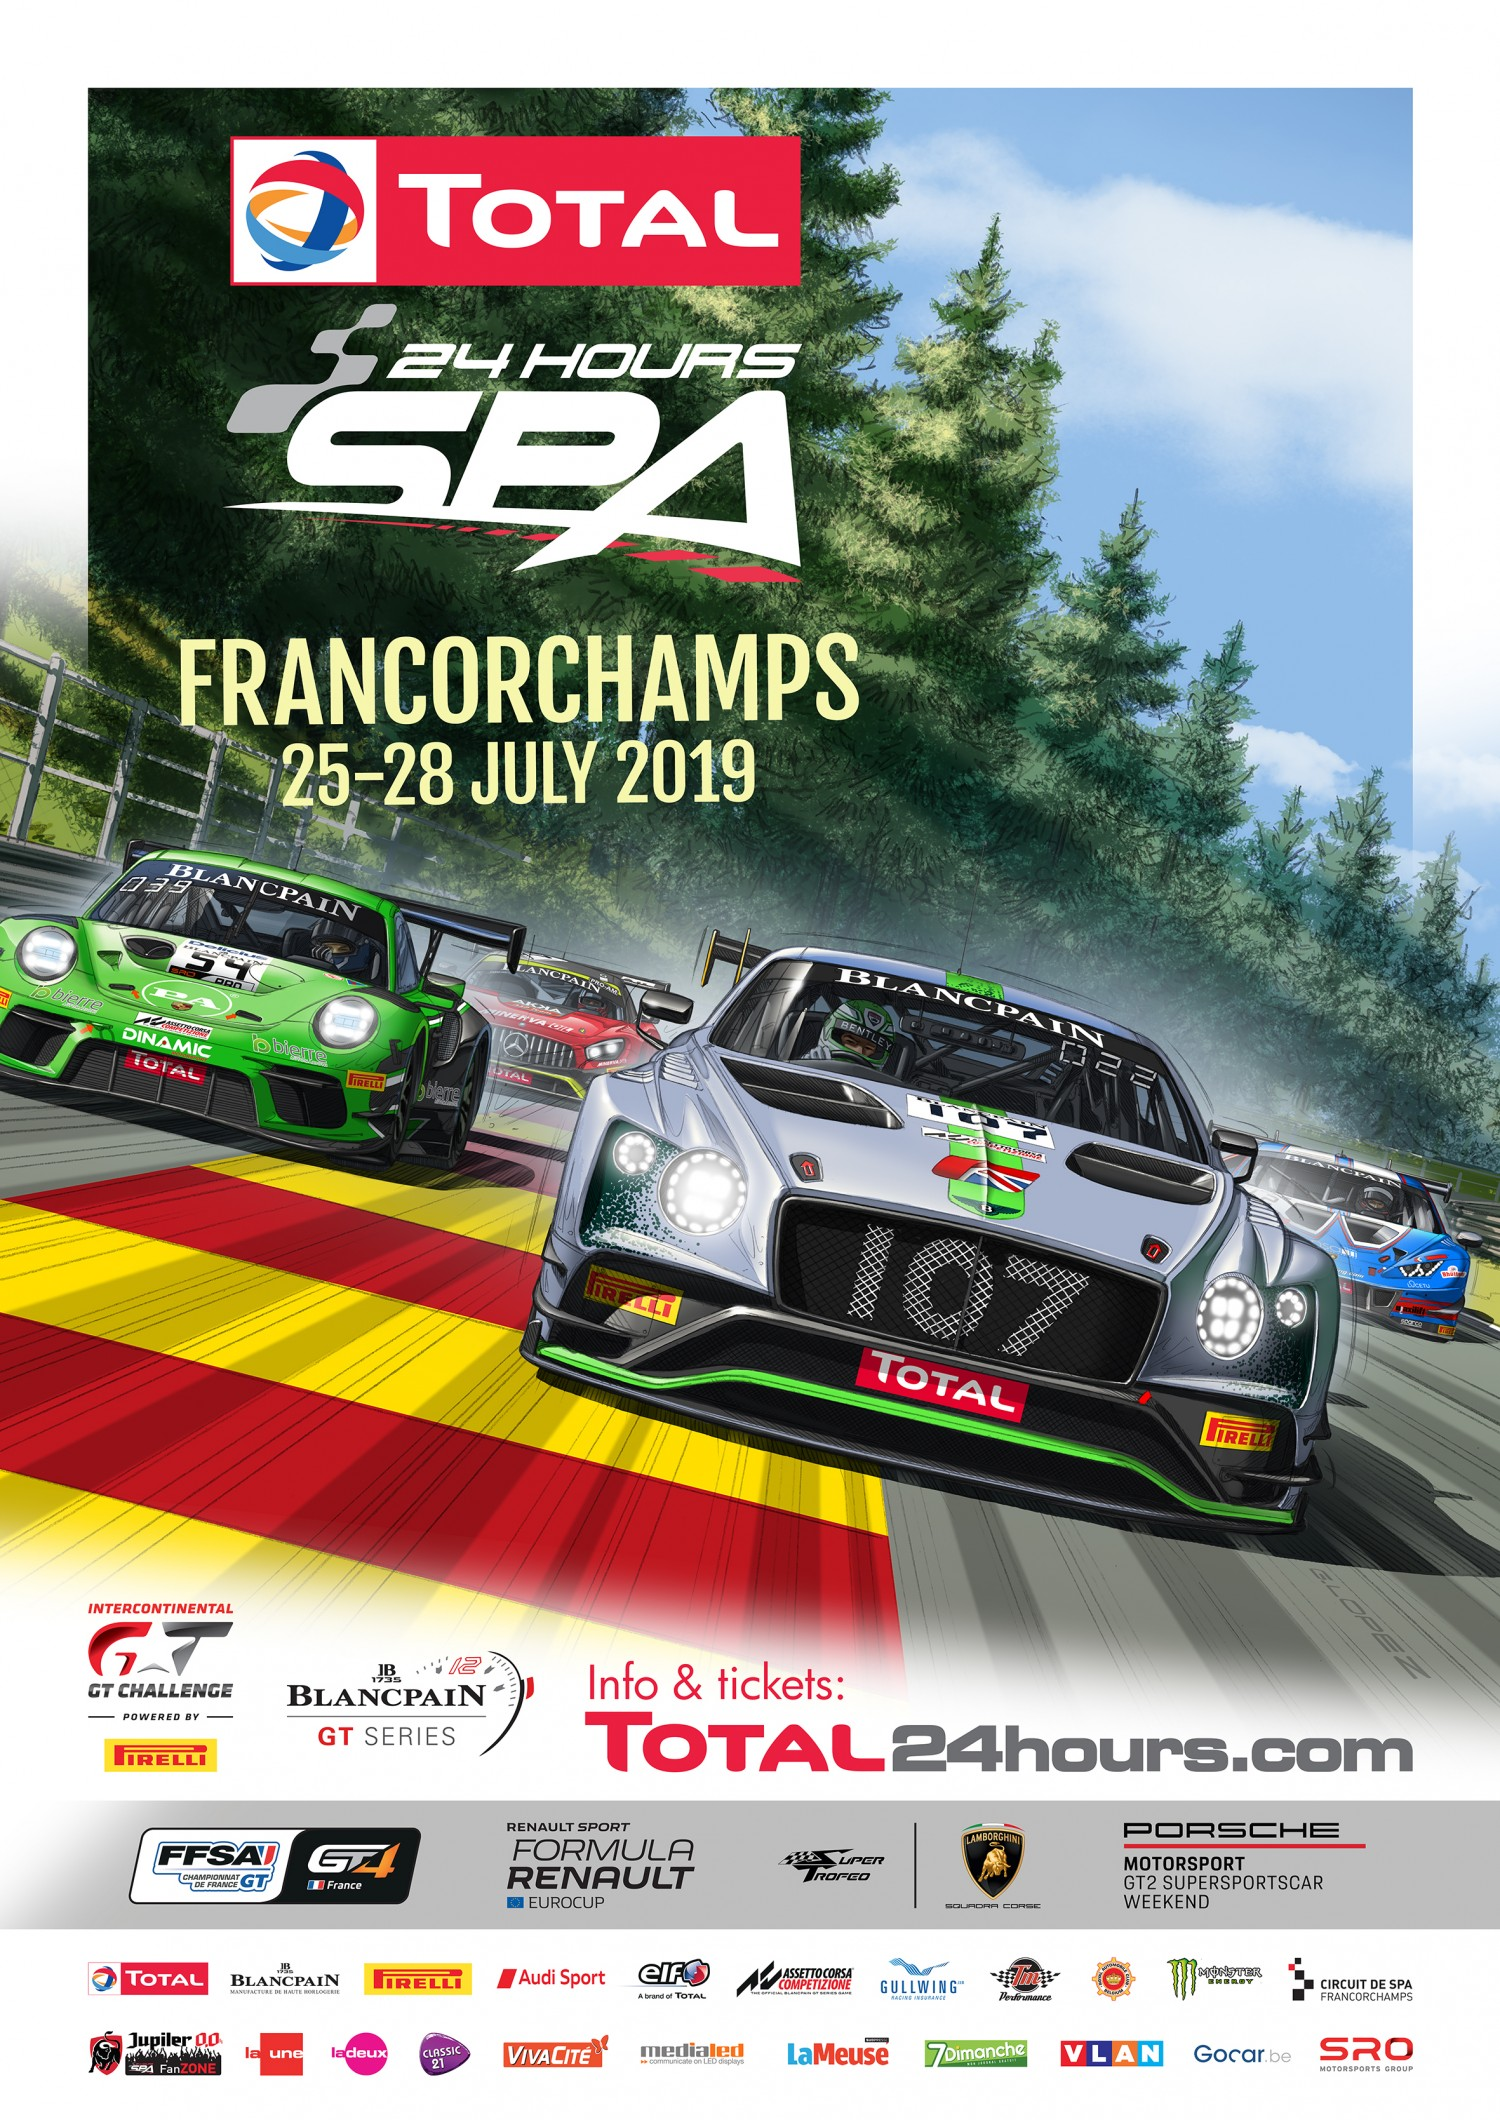 2019 Total 24 Hours of Spa kicks off with vibrant official poster